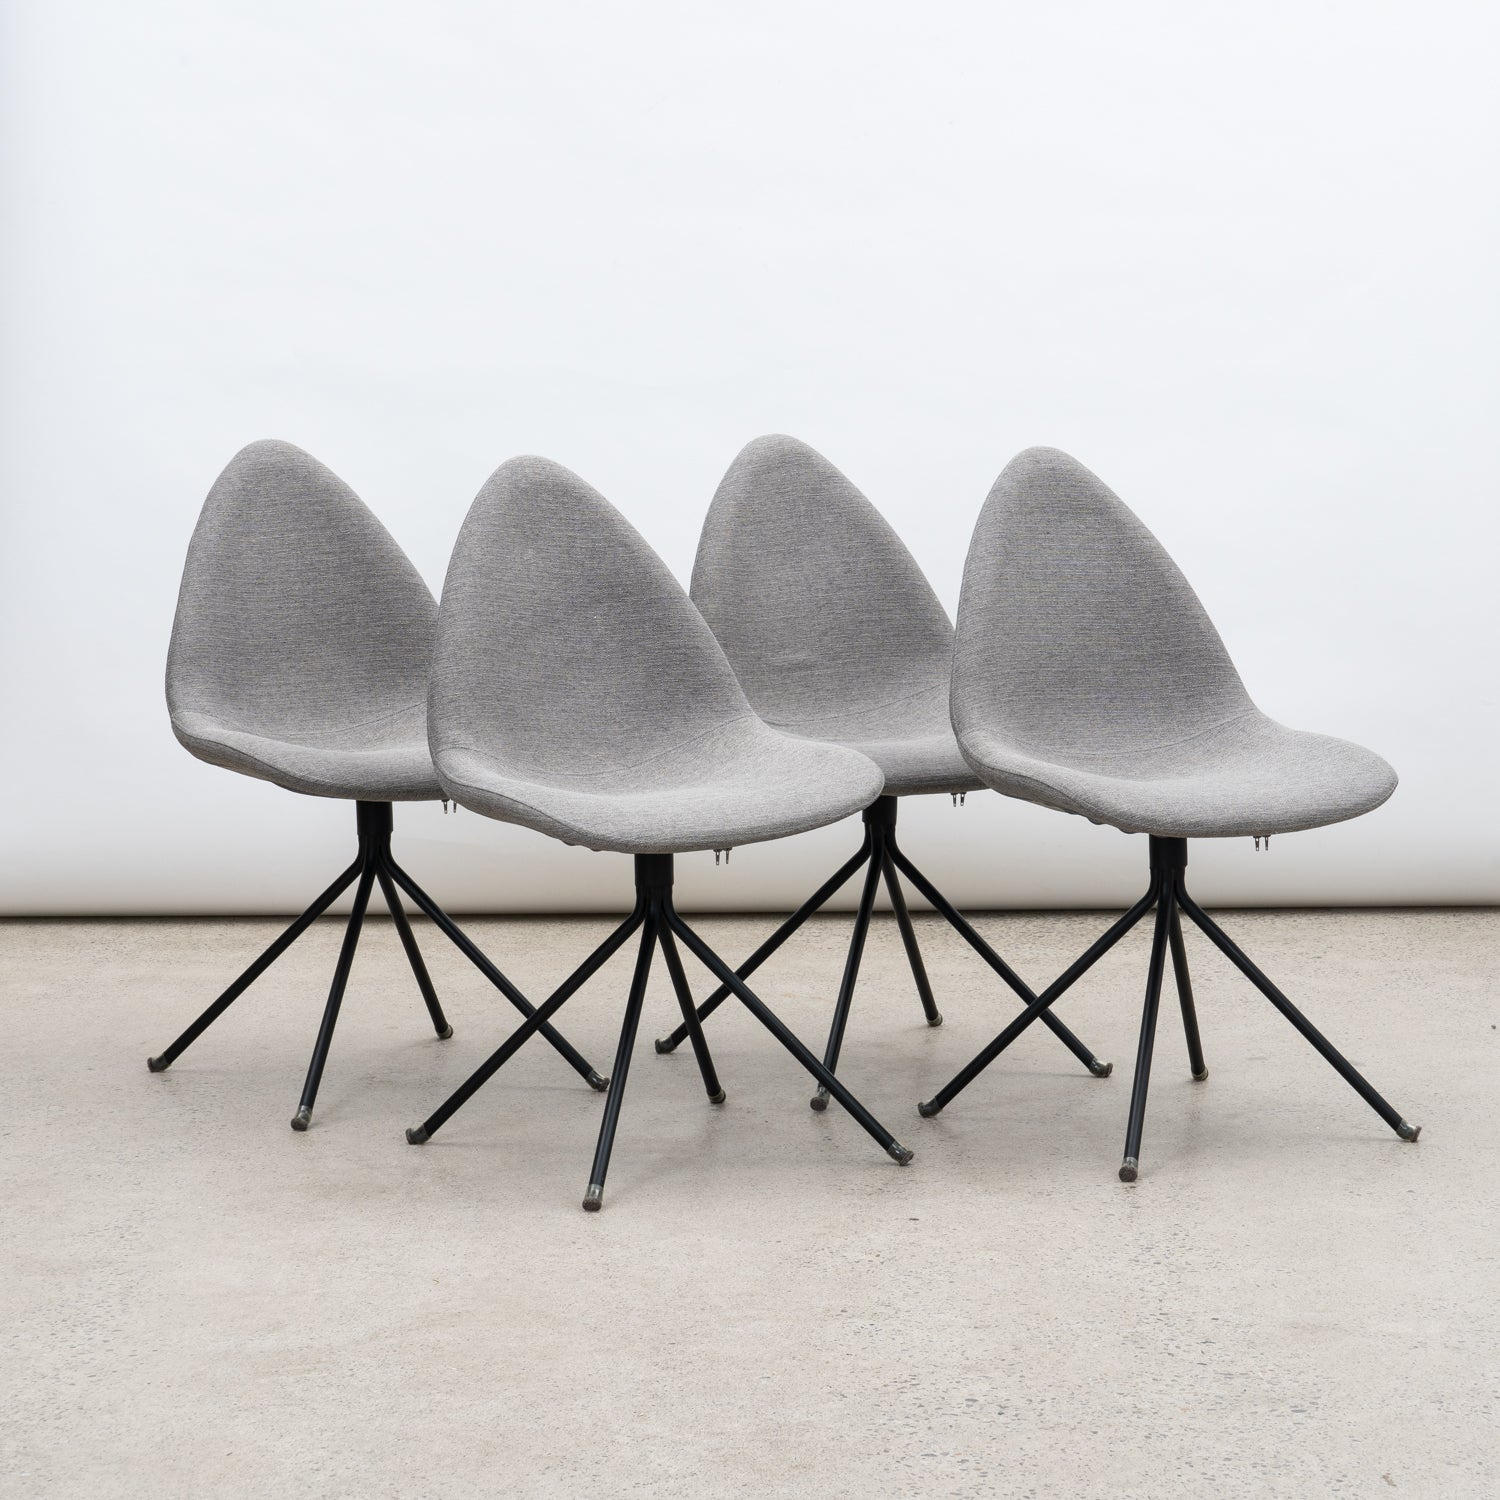 Set of 4 Contemporary Dining Chairs